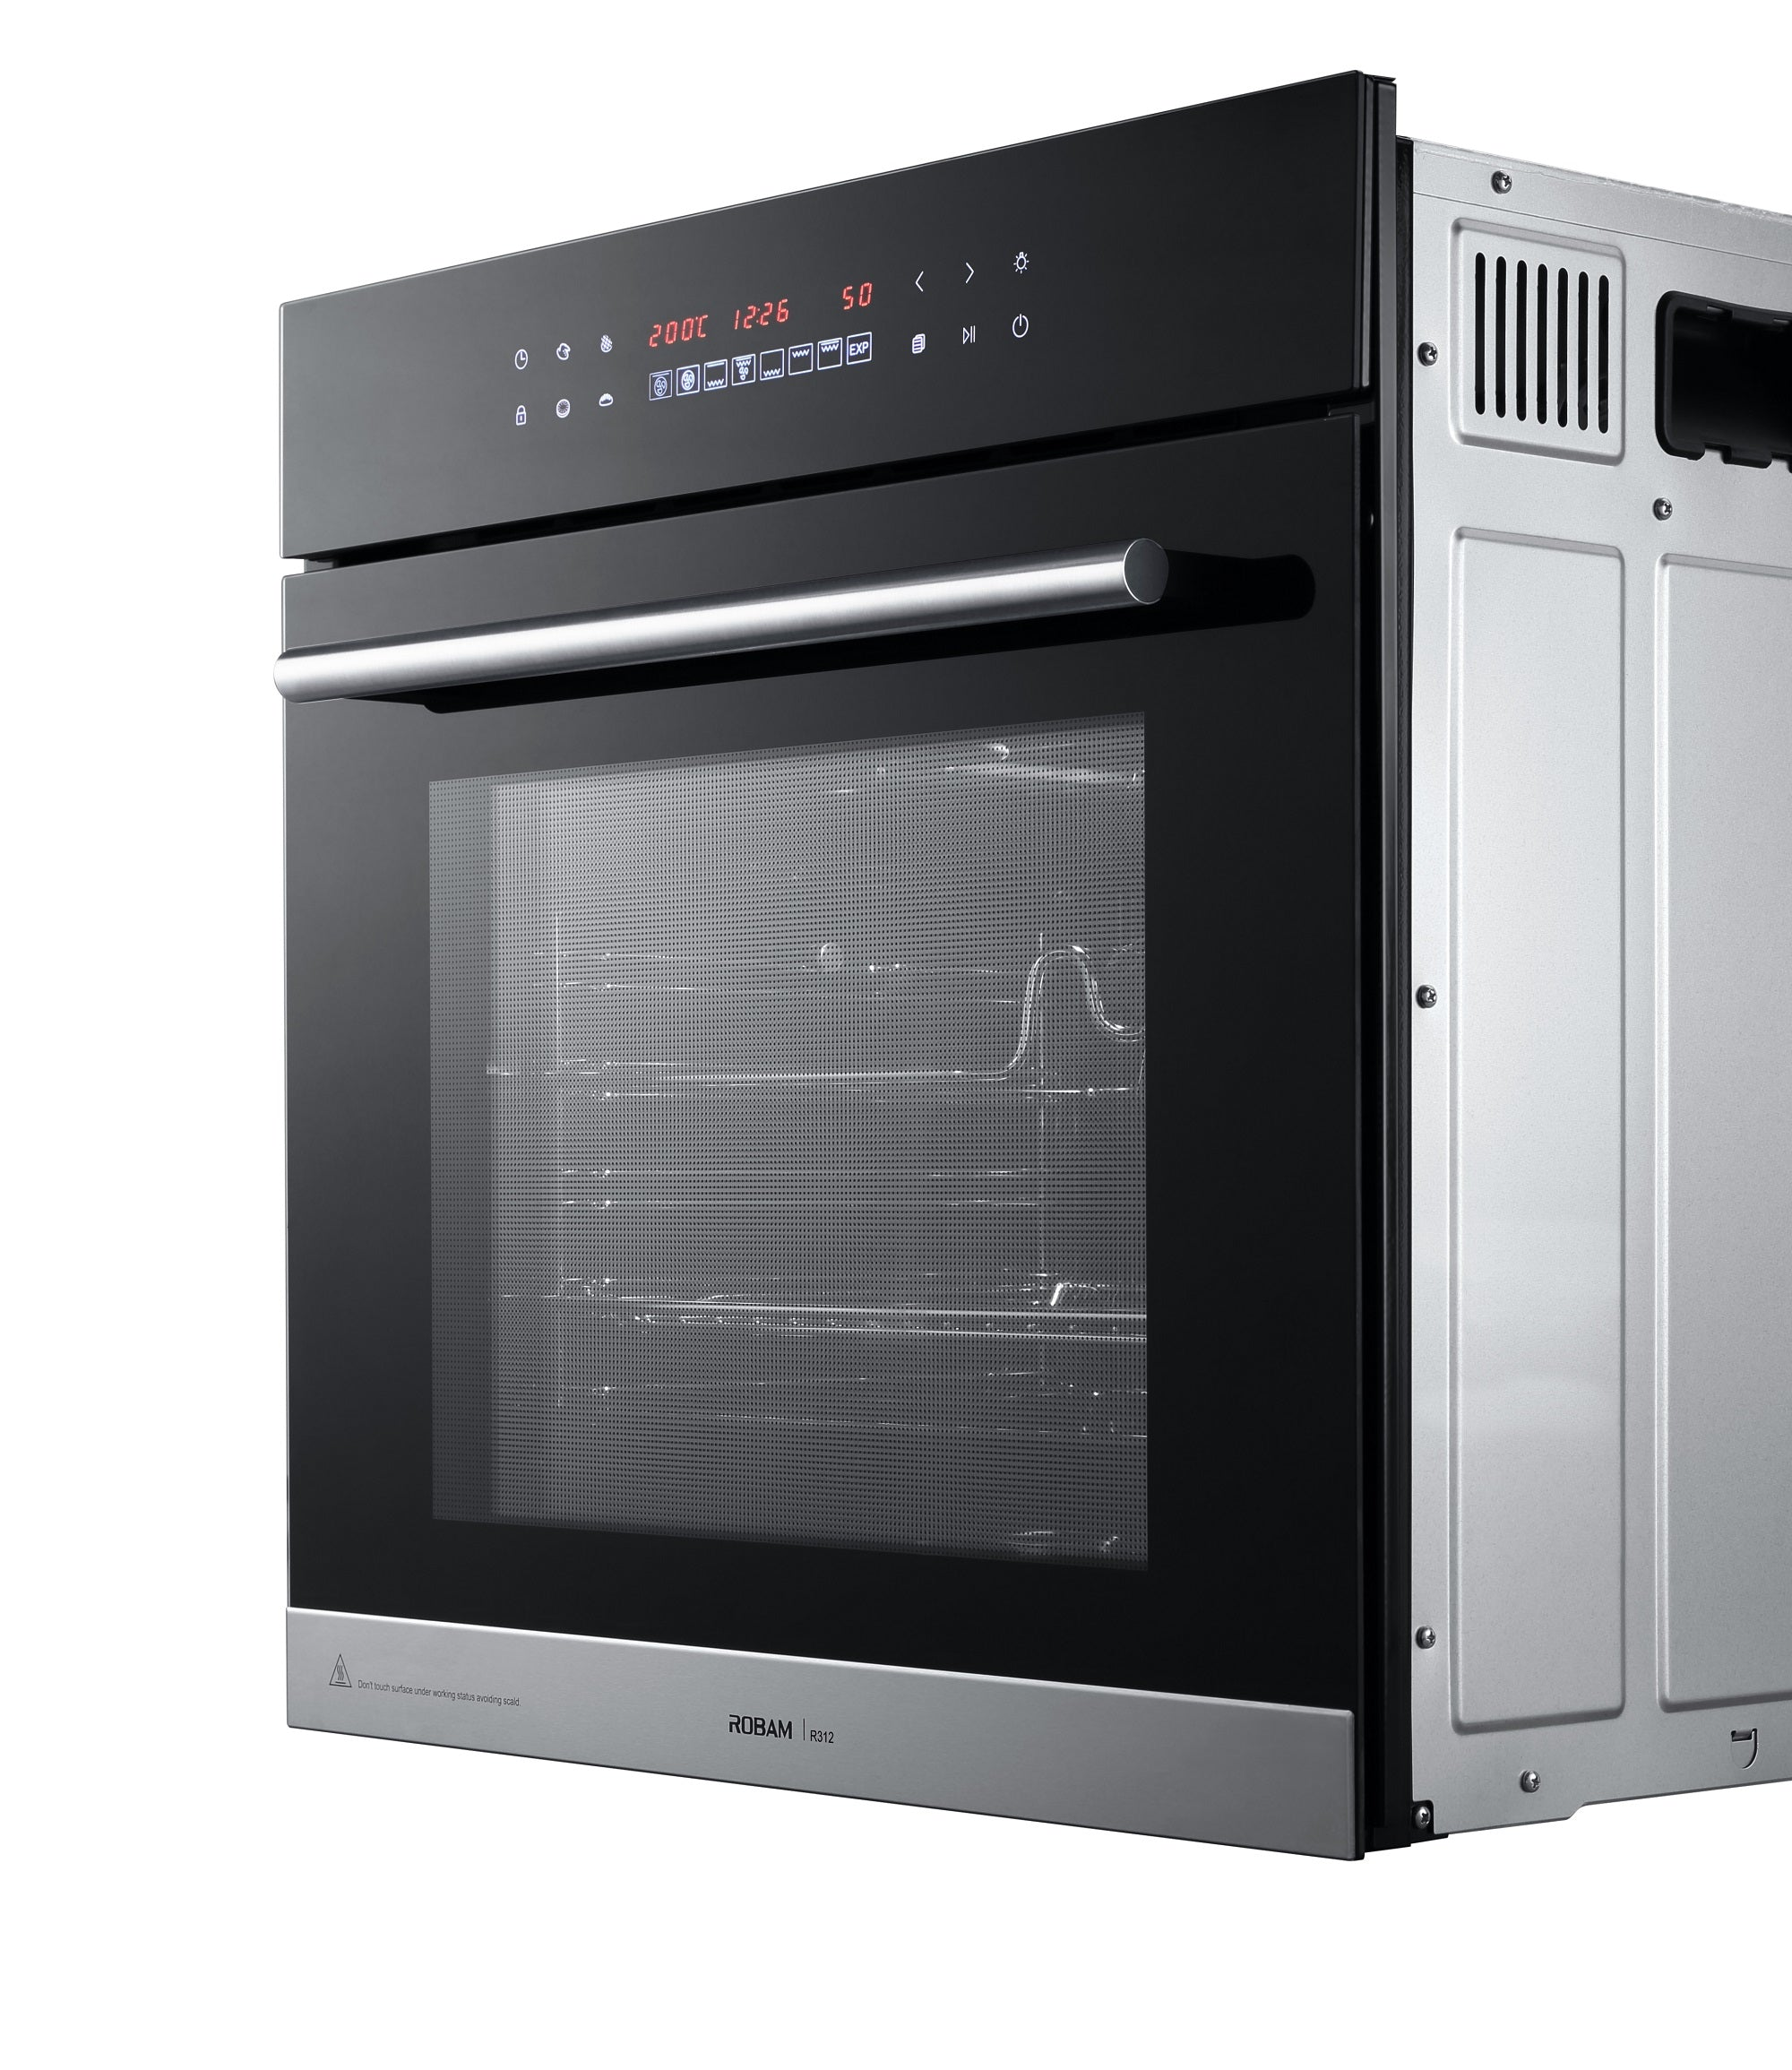 Robam Built-In Electric Oven KQWS-2800-R312 - Latest Living